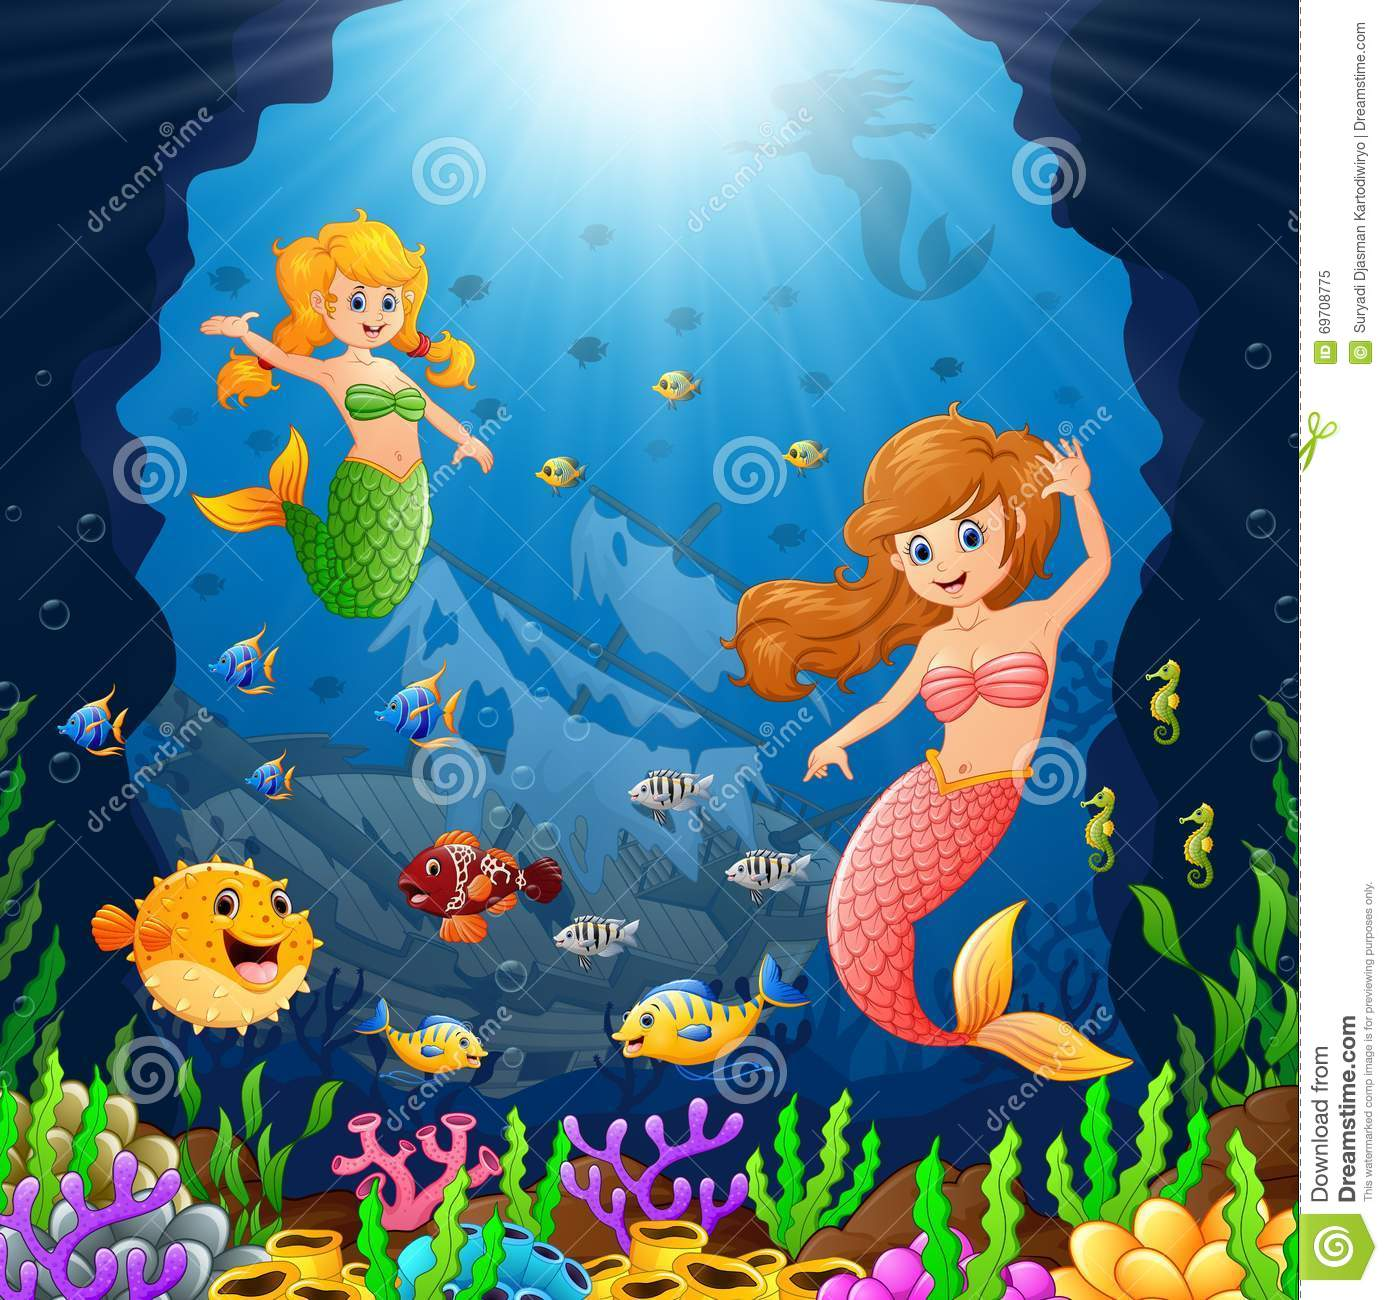 Stock Illustration Cartoon Mermaid Under Sea Illustration Image6970877...